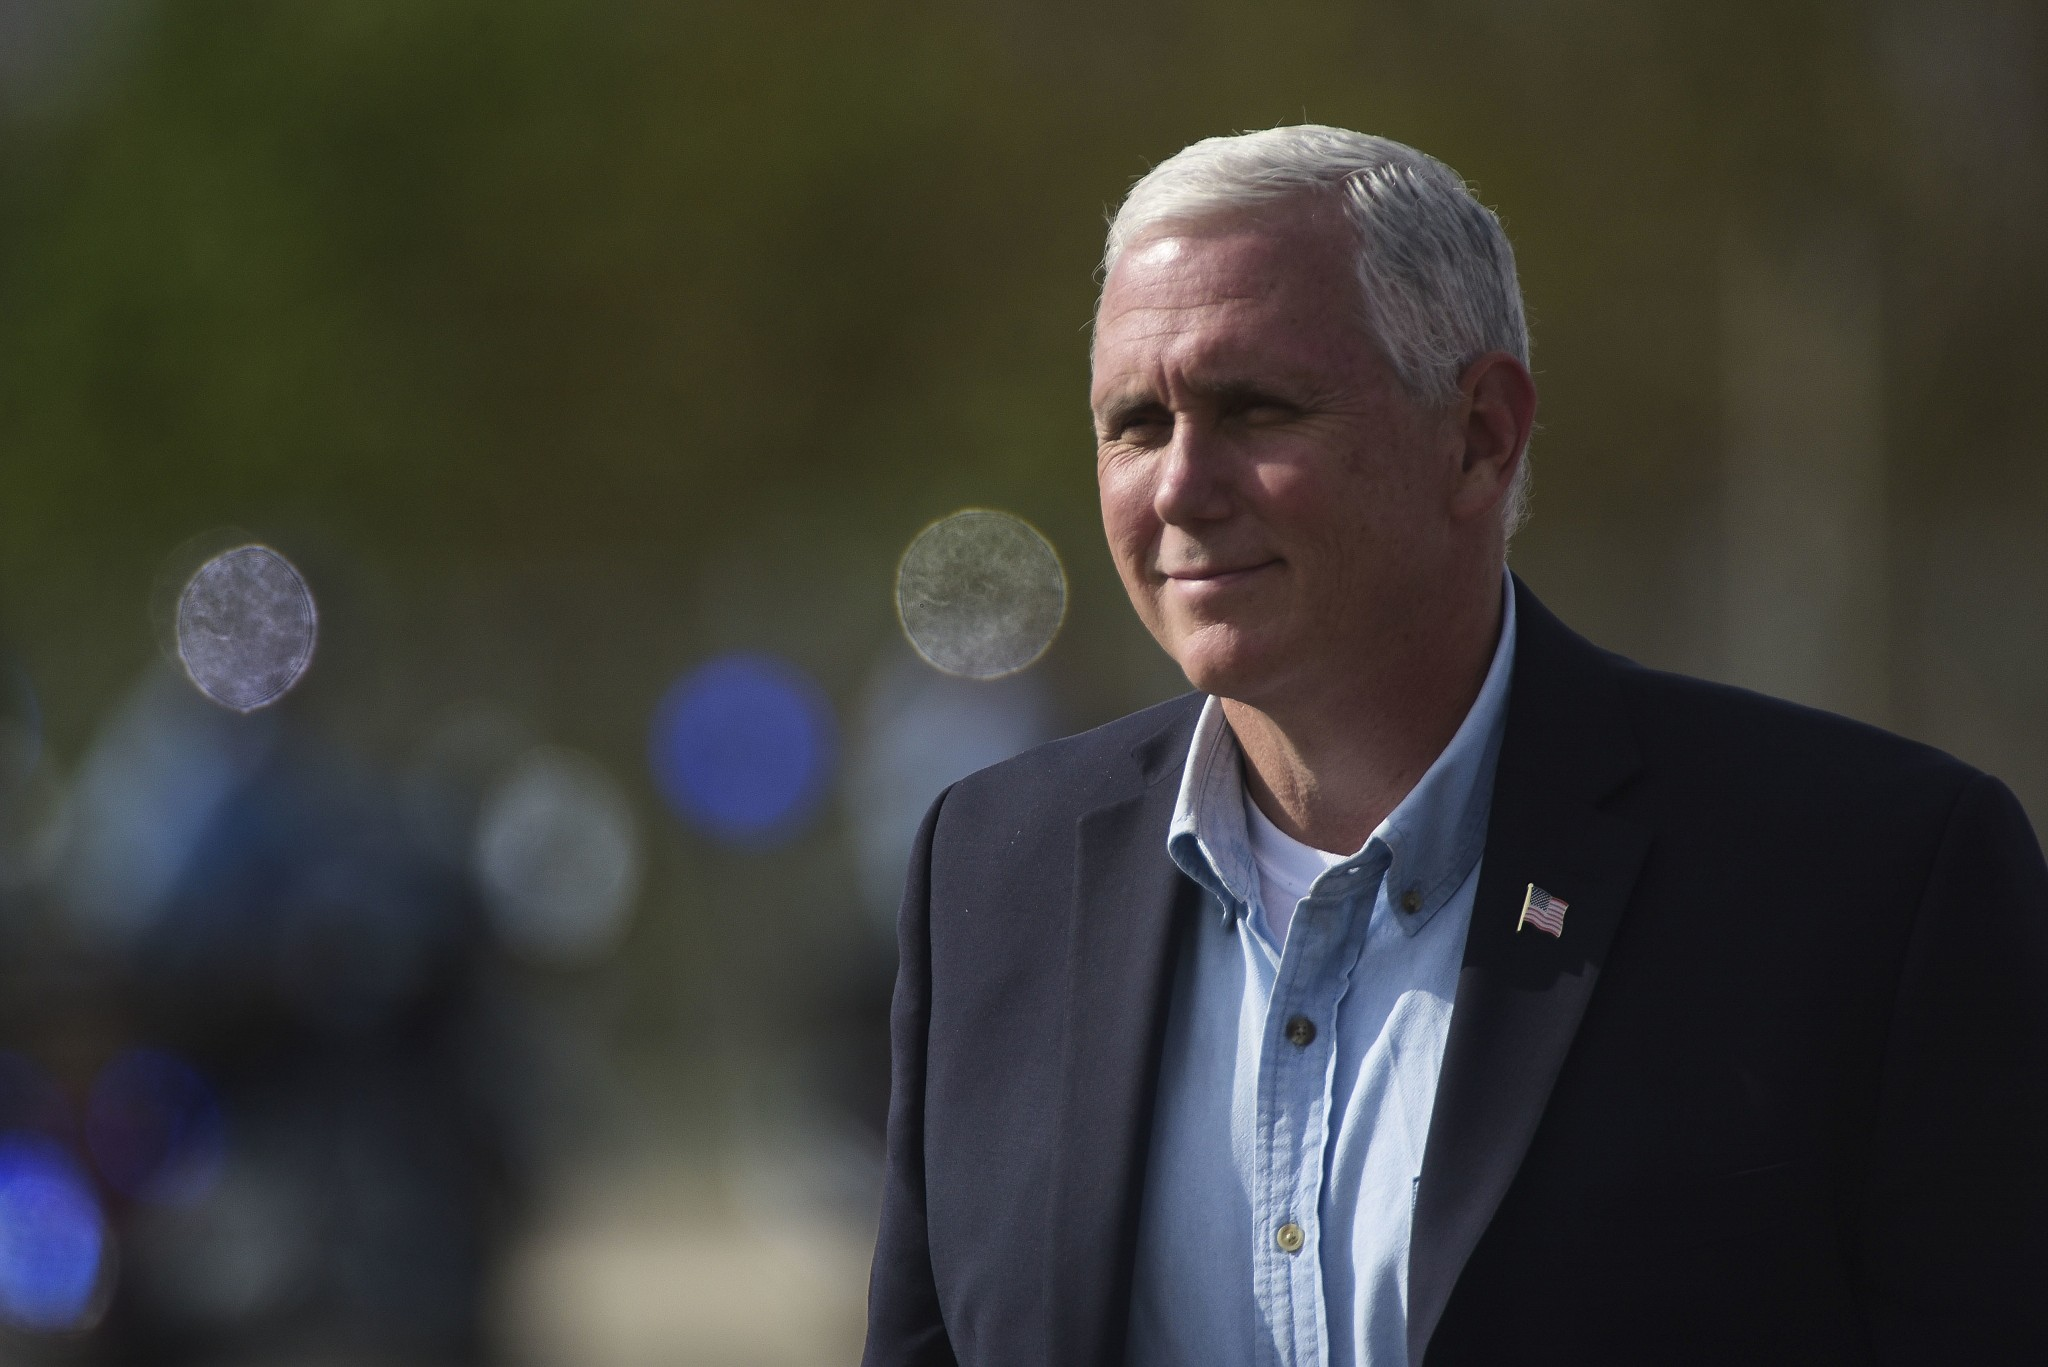 Pence delays Israel trip over GOP tax bill